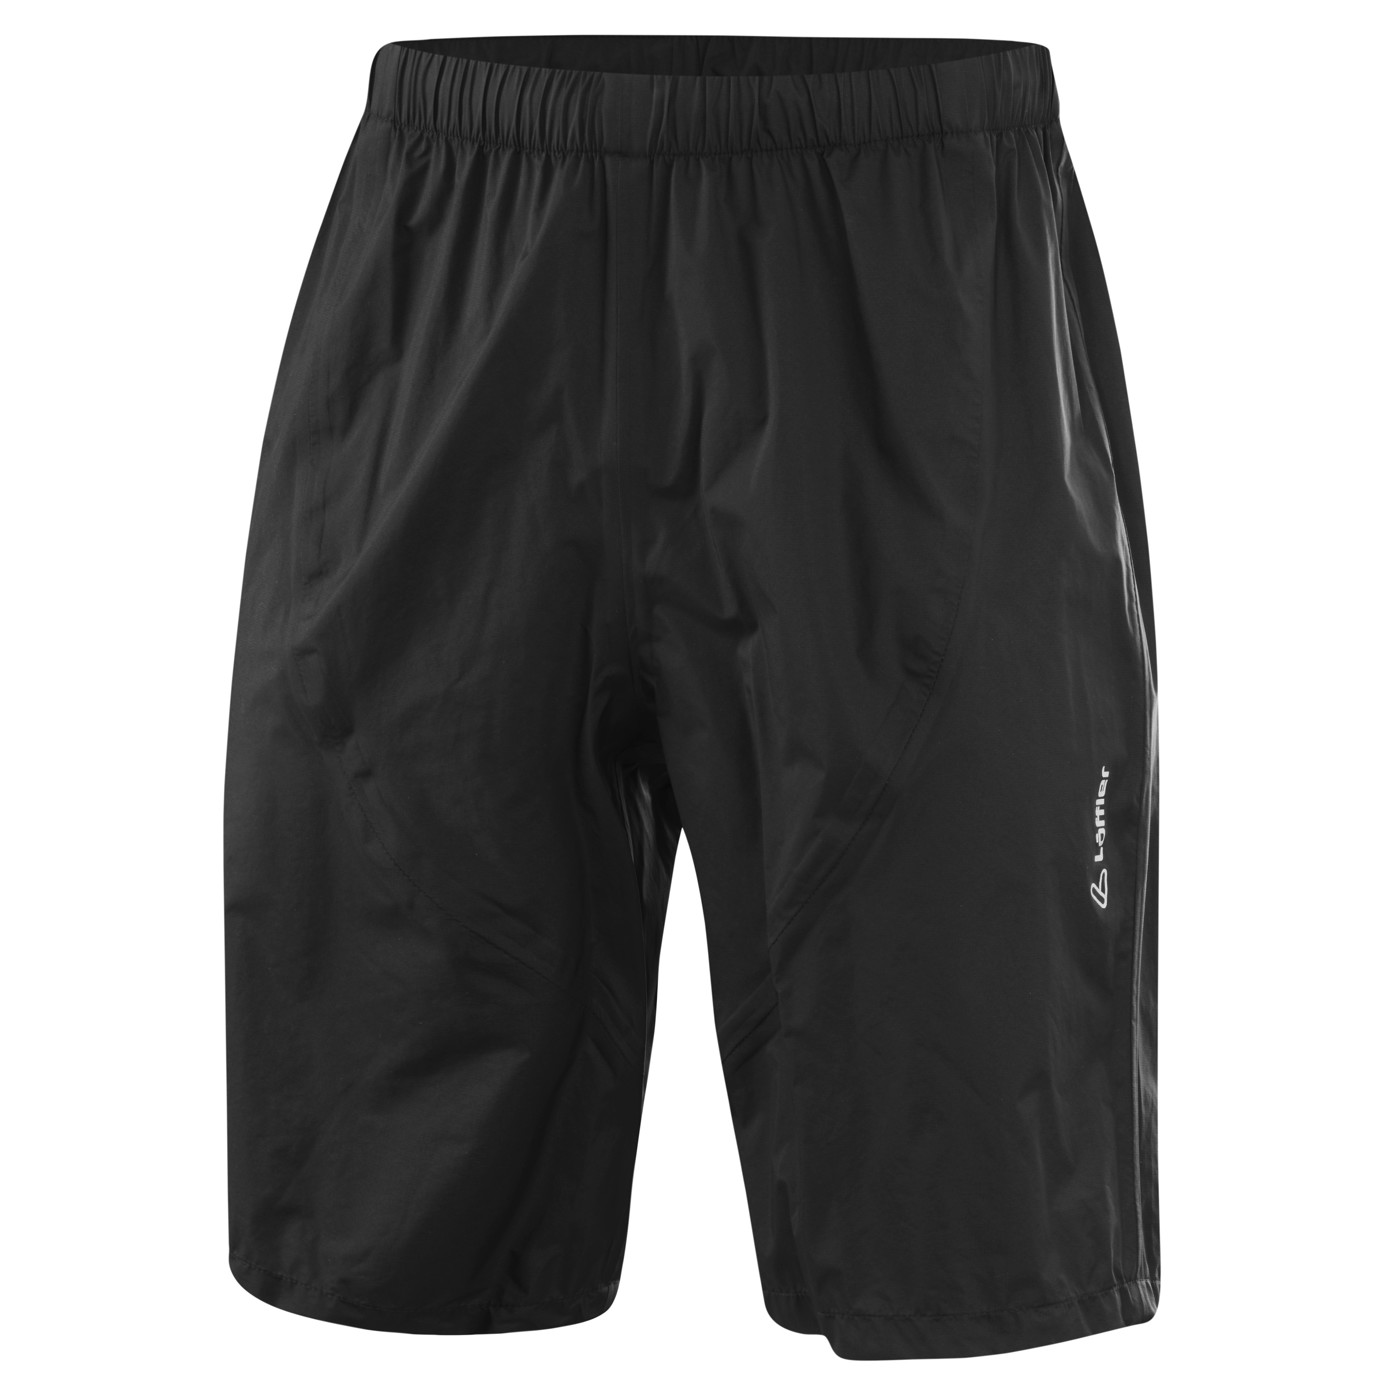 LÖFFLER SHORTS WPM POCKET - Herren